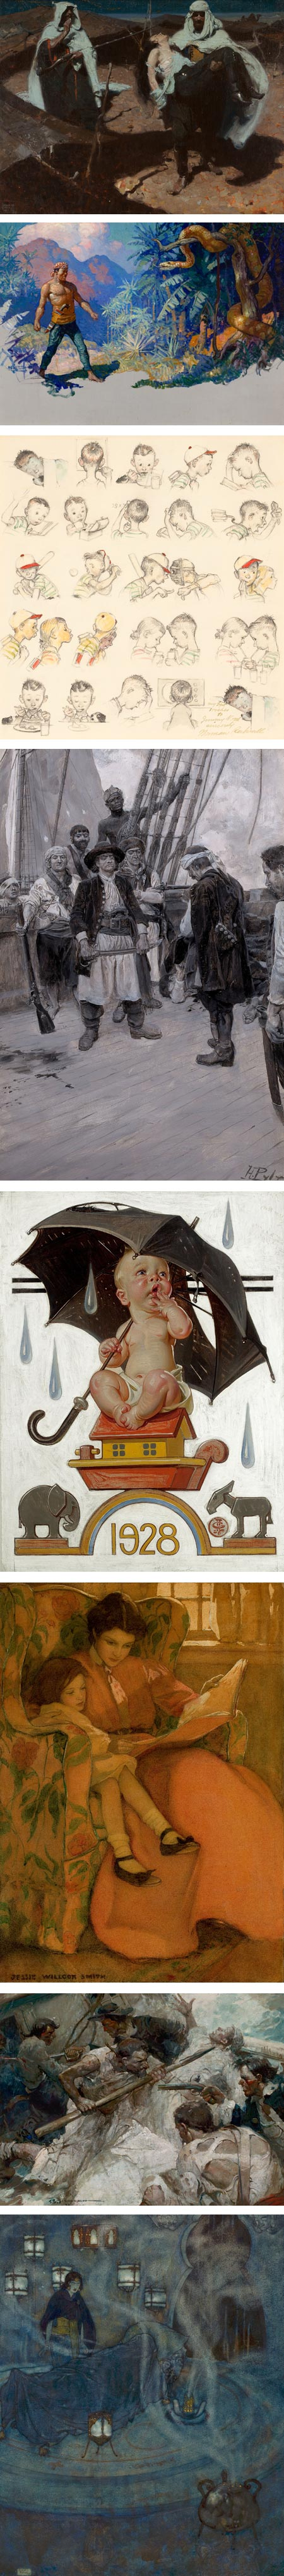 Heritage Illustration Auction: Dean Cornwell, N.C. Wyeth, Norman Rockwell, Howard Pyle, J.C. Leyendecker, Jessie Wilcox Smith, Frank Schoonover, Edmund Dulac)